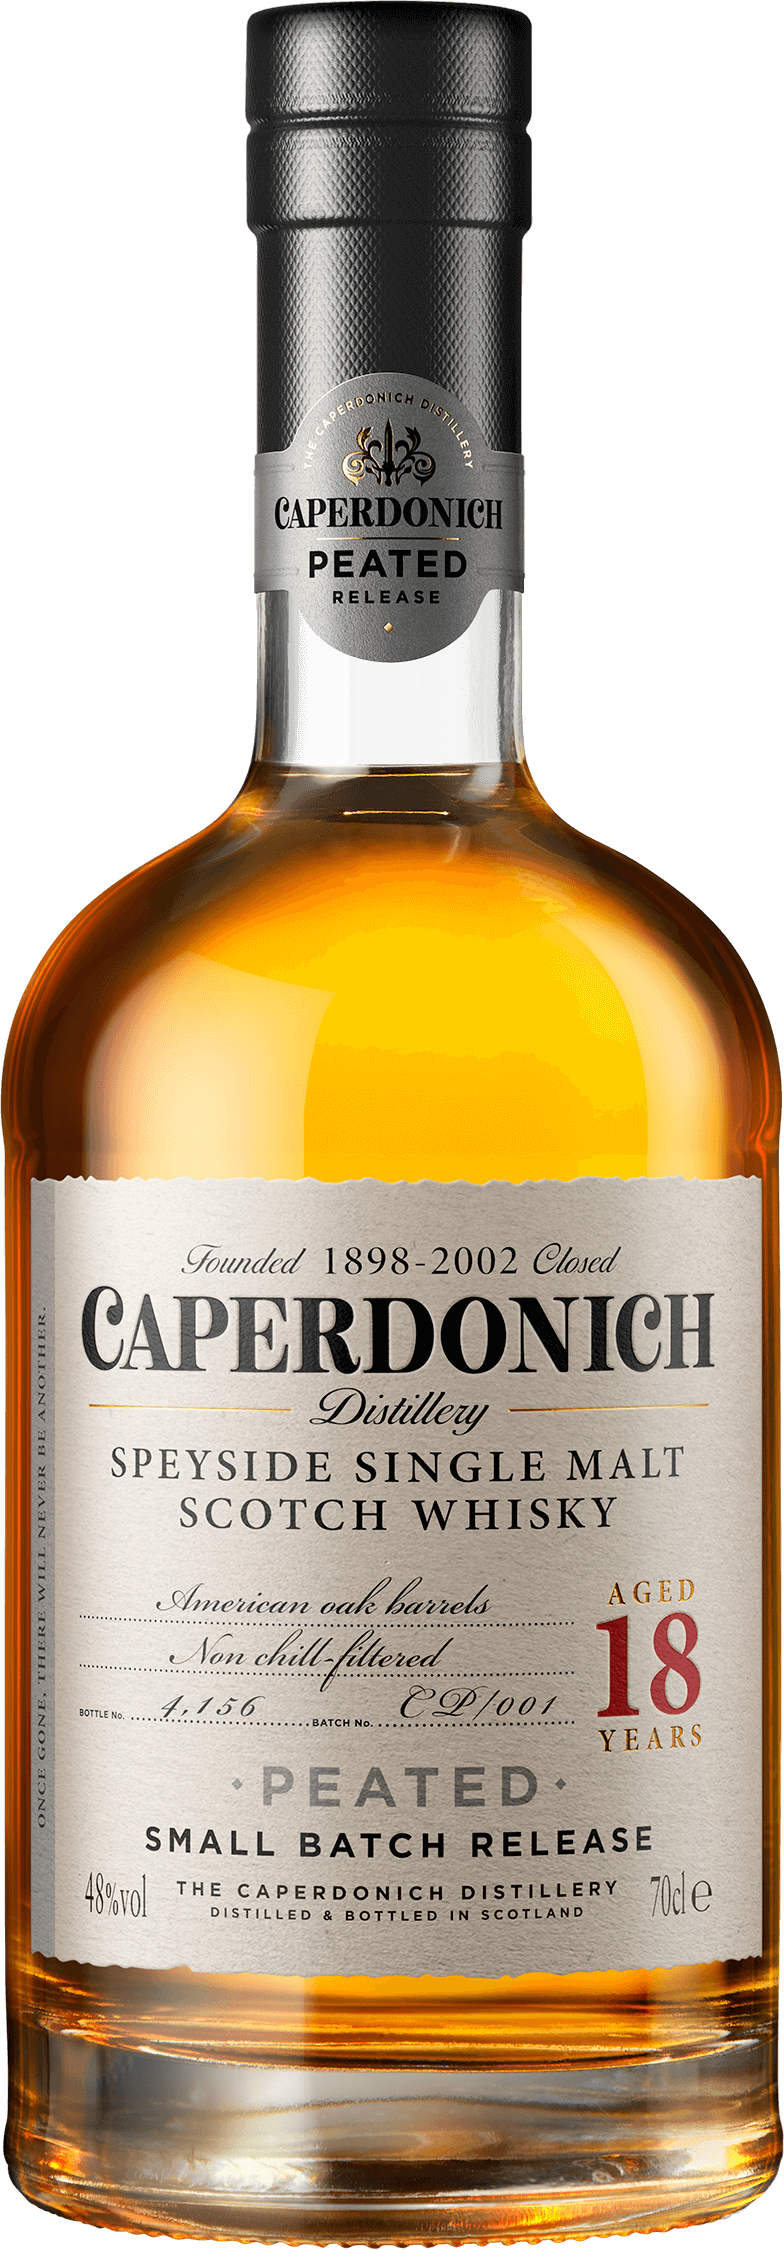 Bottle of caperdonich peated 18 years